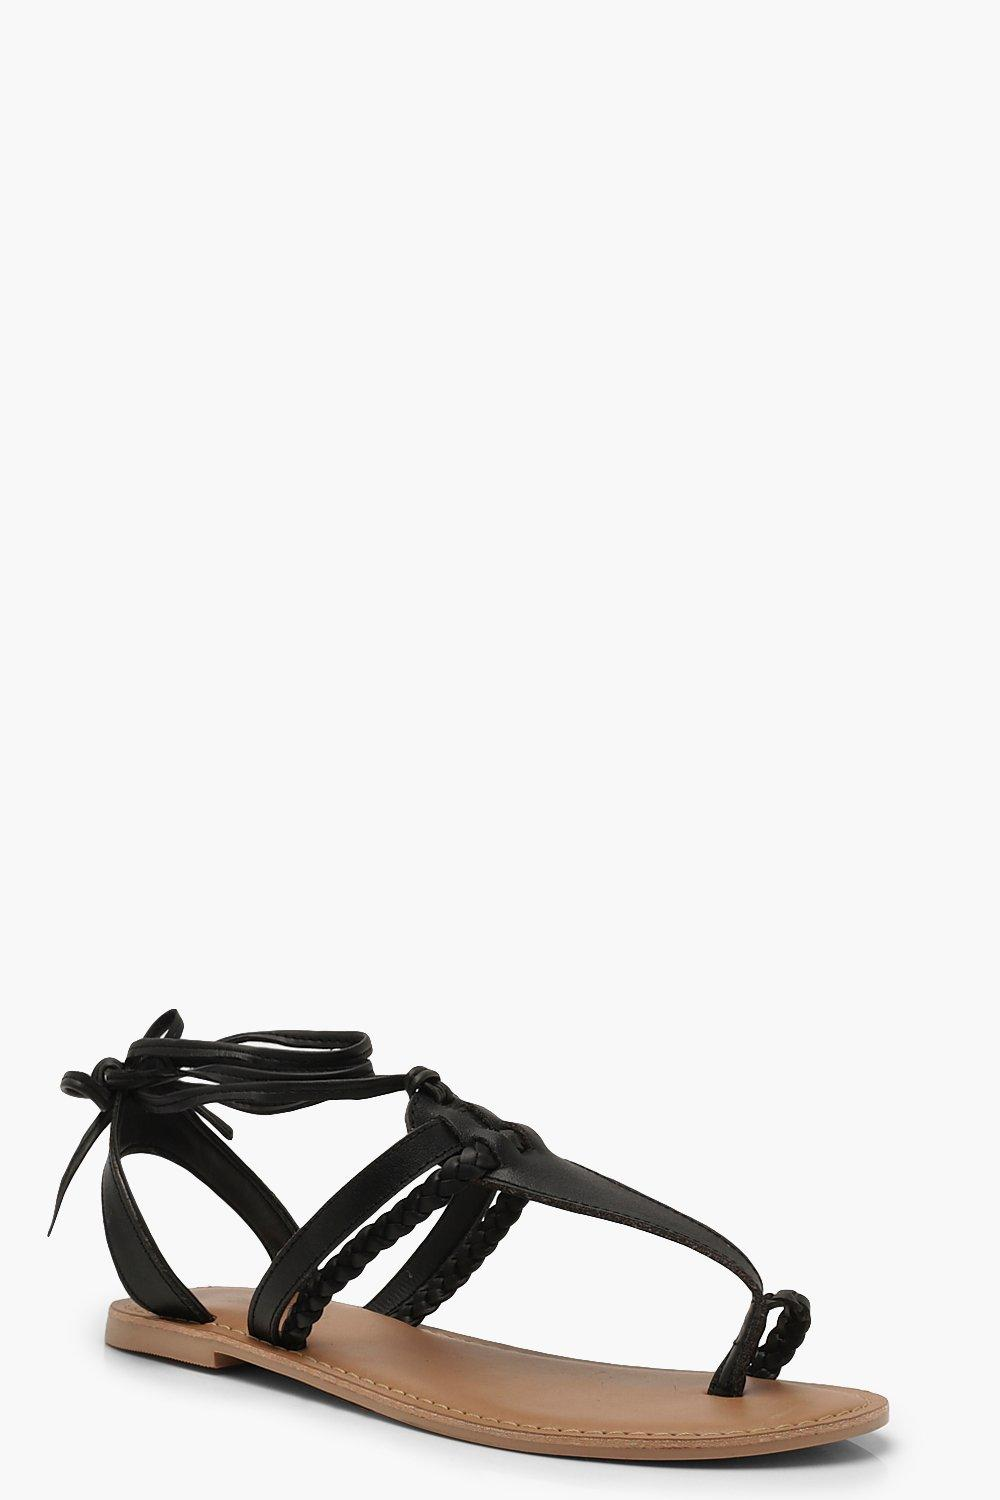 Festival Shoes Leather Toe Post Ghillie Sandals